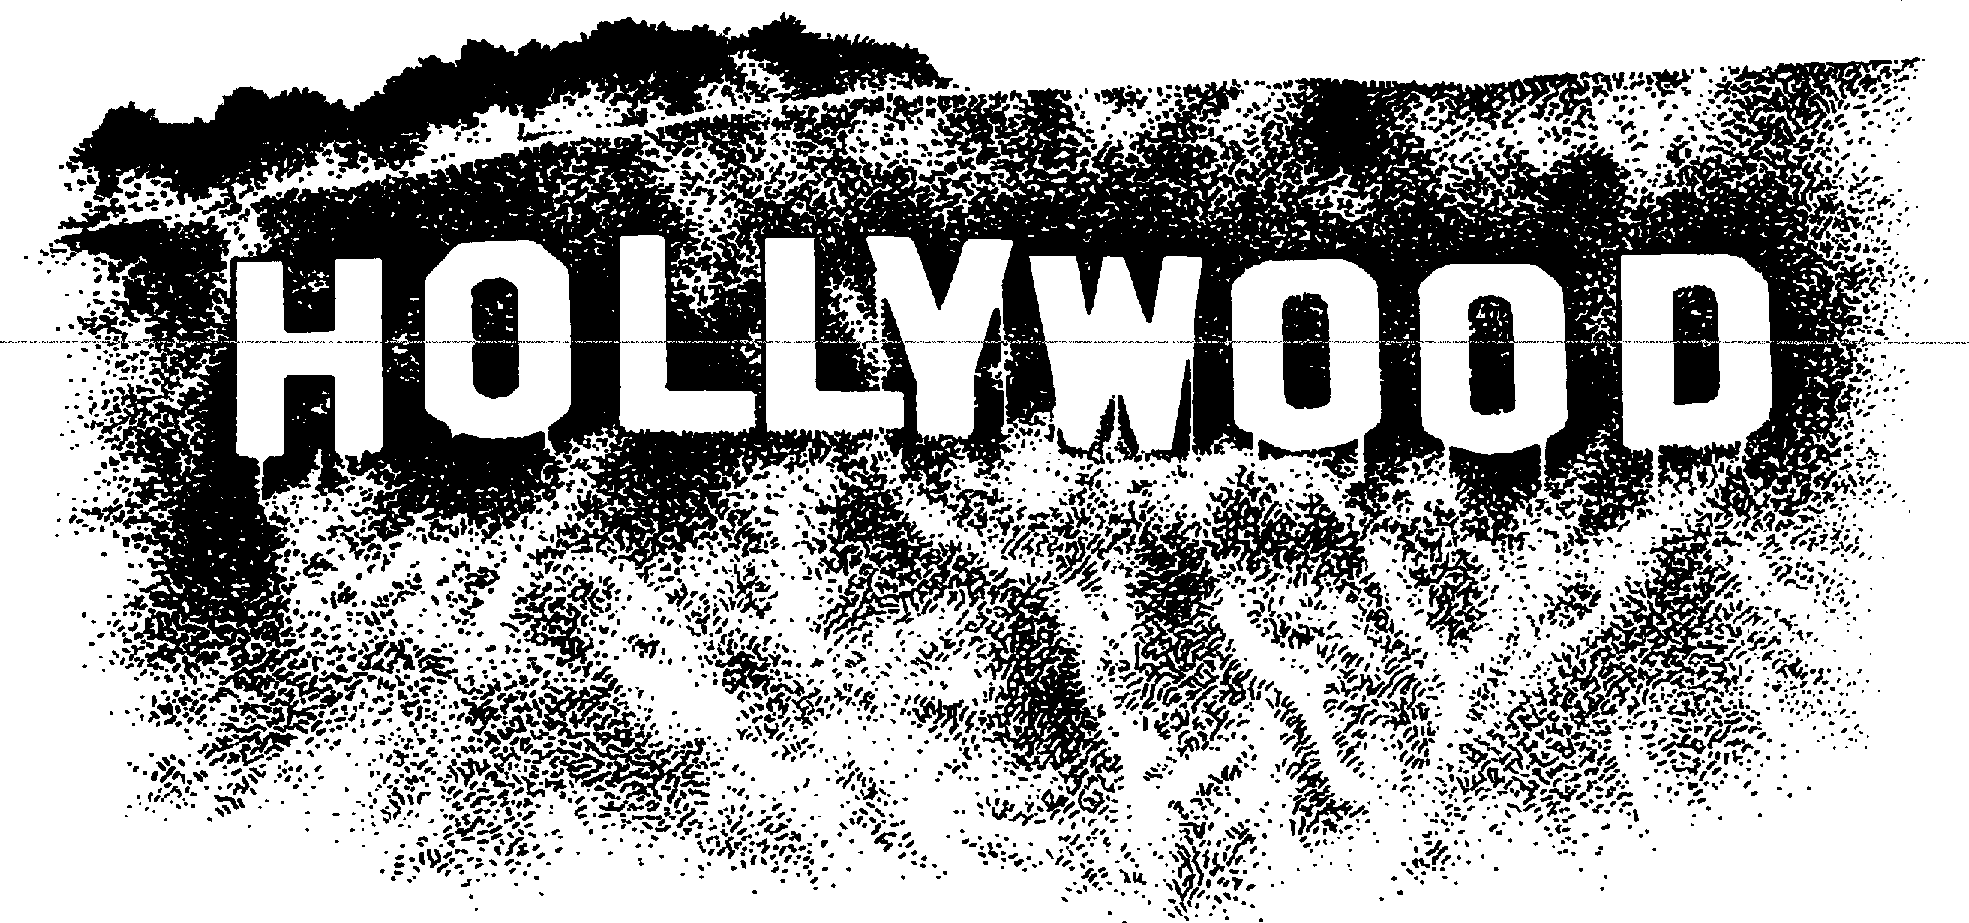 Hollywood Sign Clipart - Google Search-hollywood sign clipart - Google Search-9